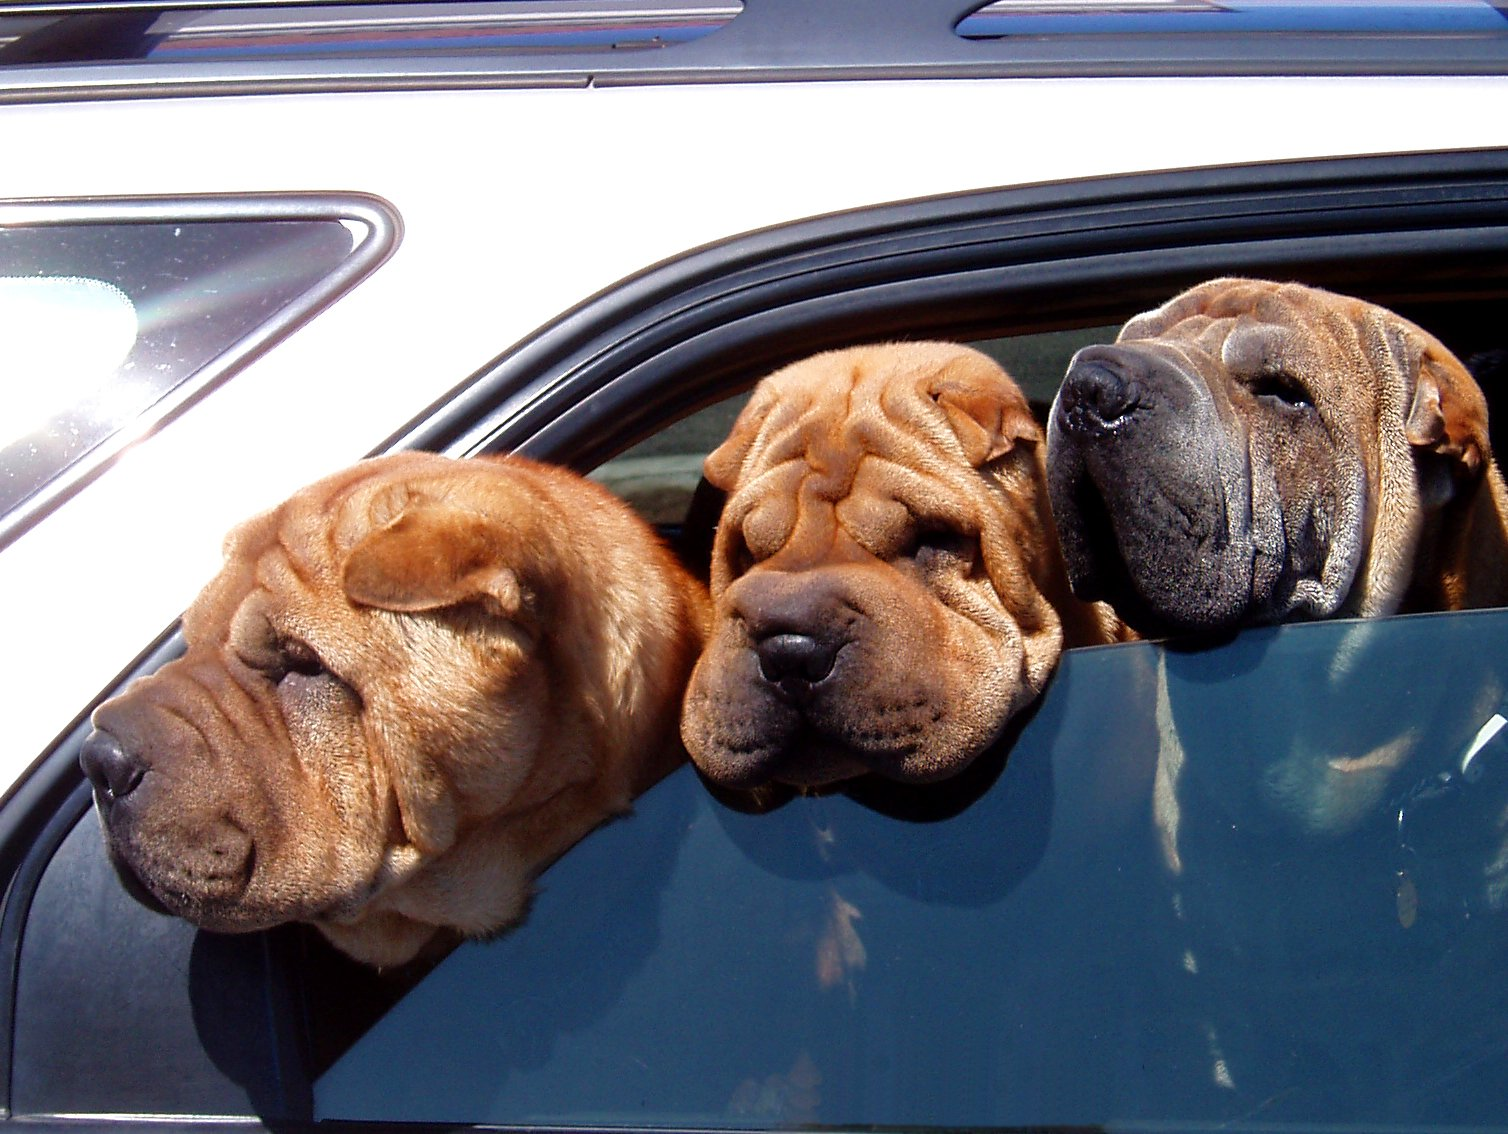 Three Shar Pei dogs with their heads hanging out the car window